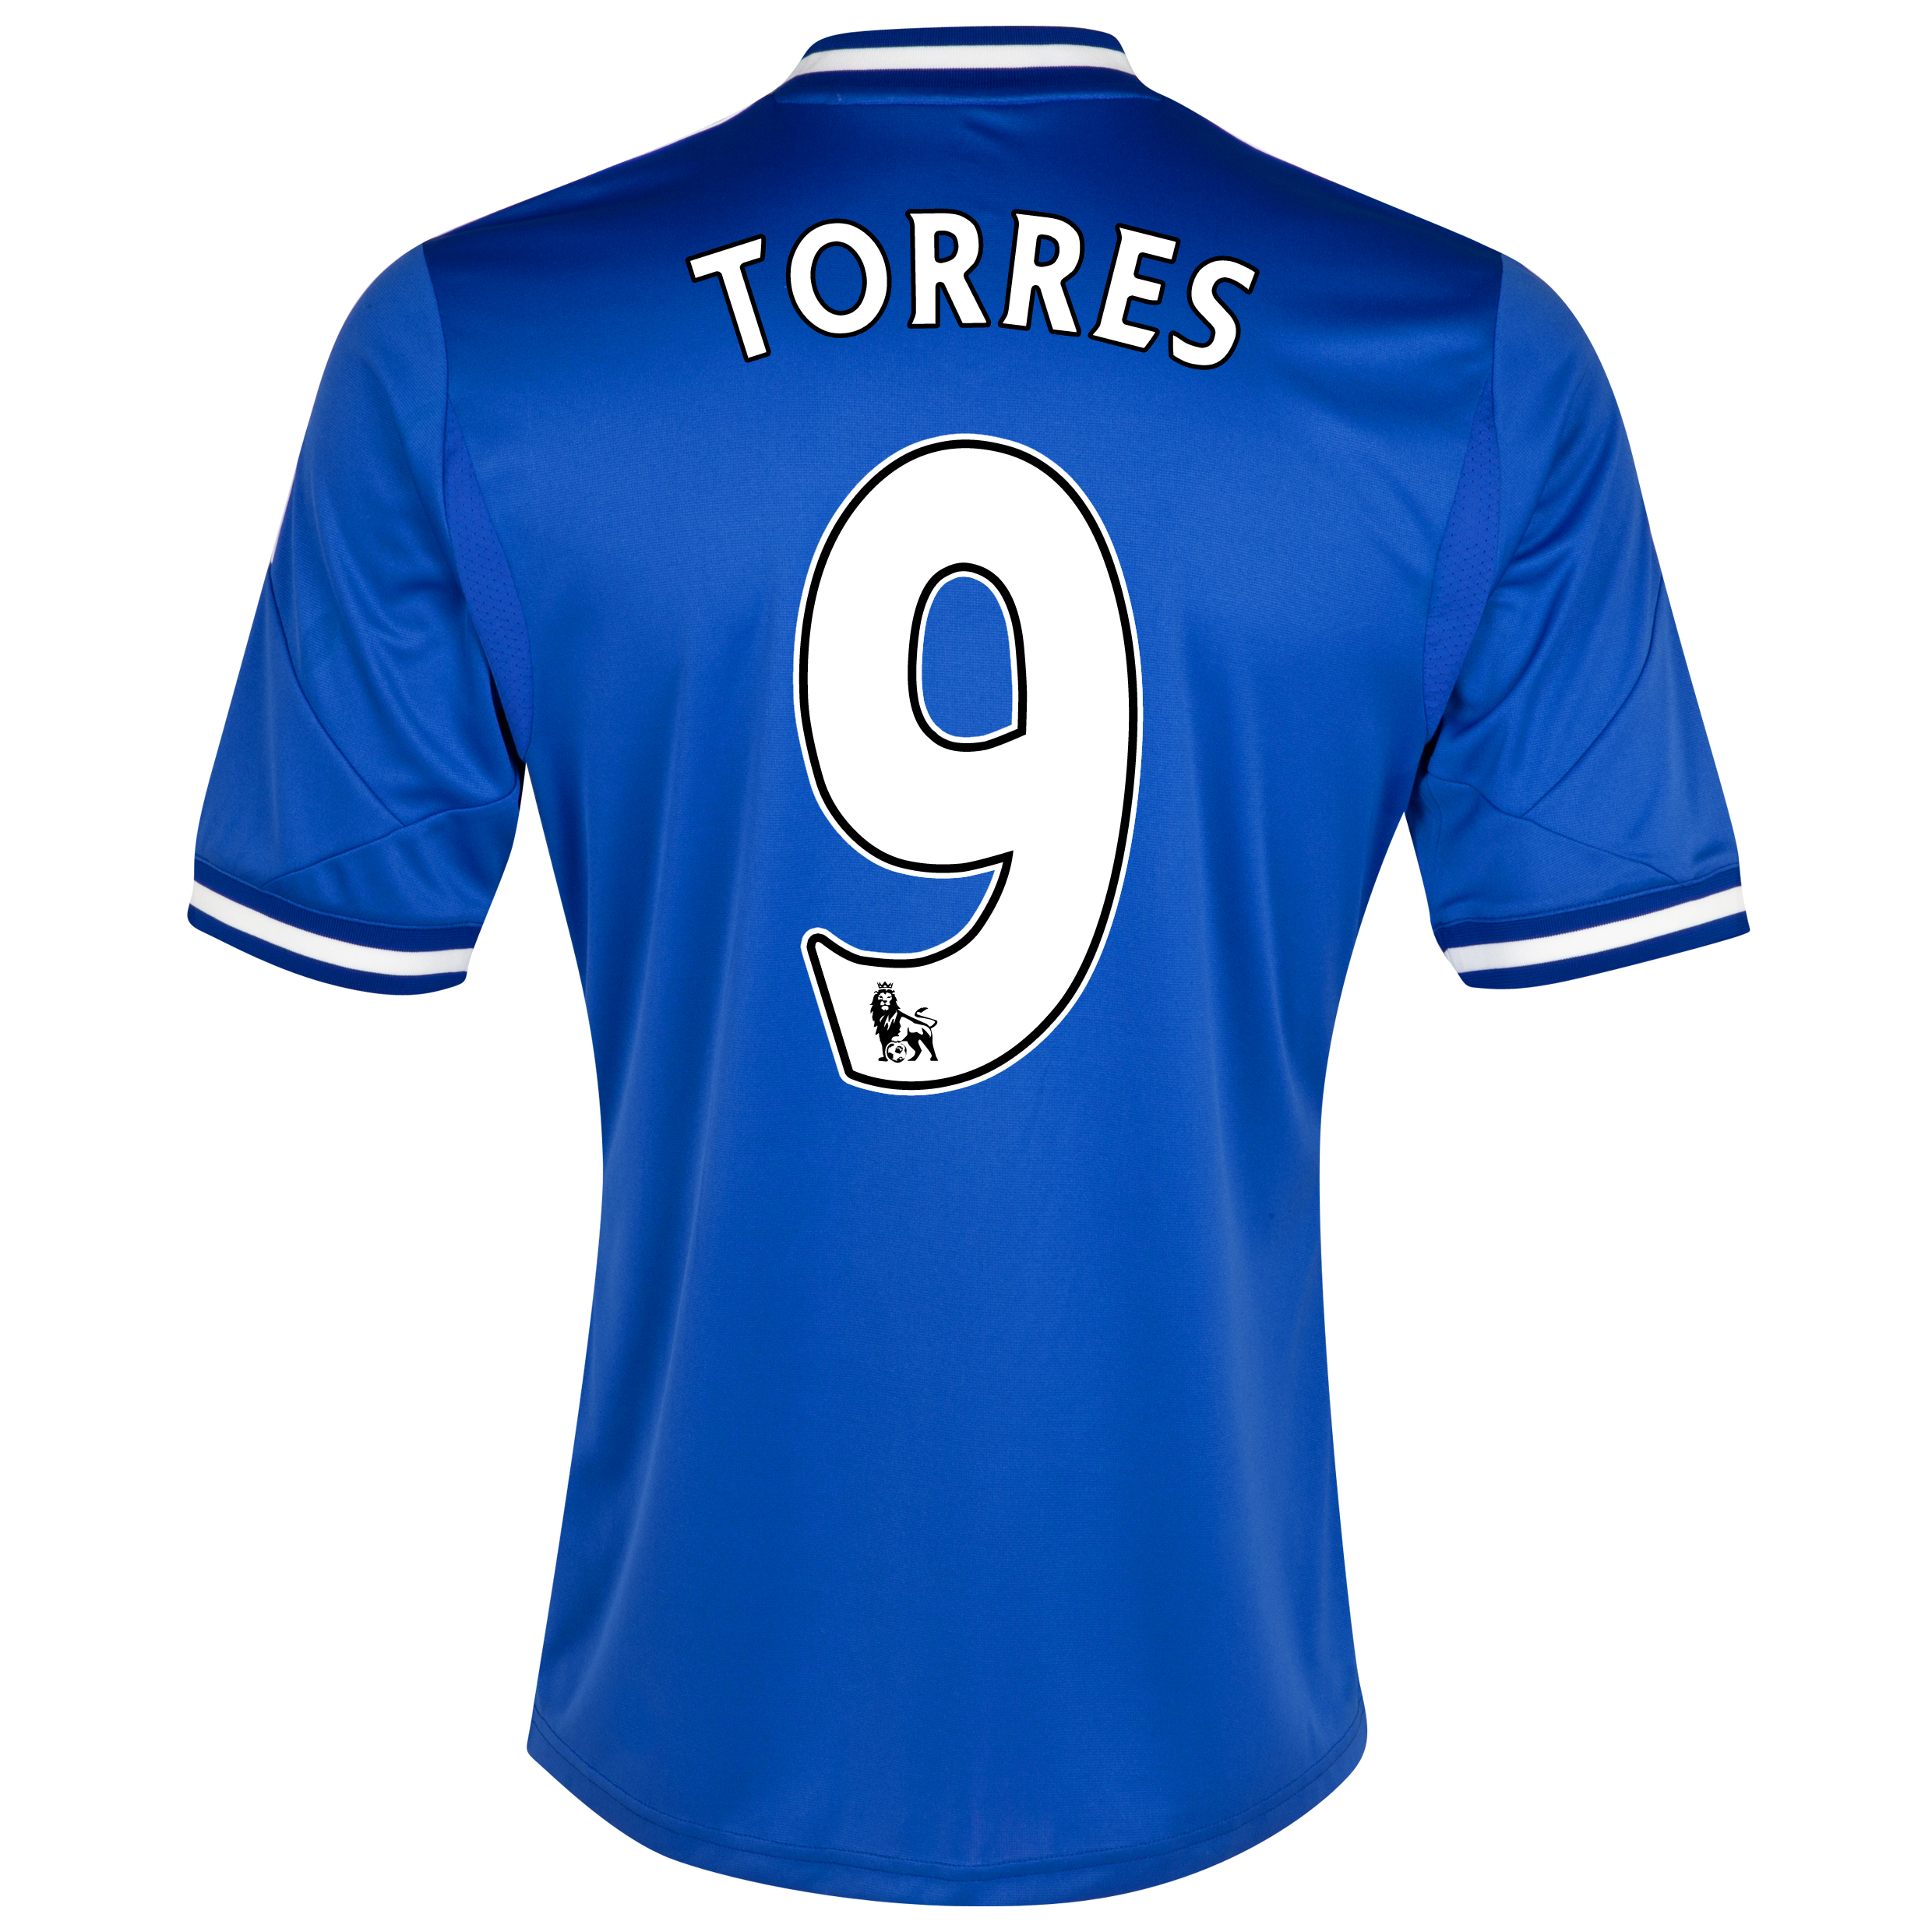 Chelsea Home Shirt 2013/14 with Torres 9 printing